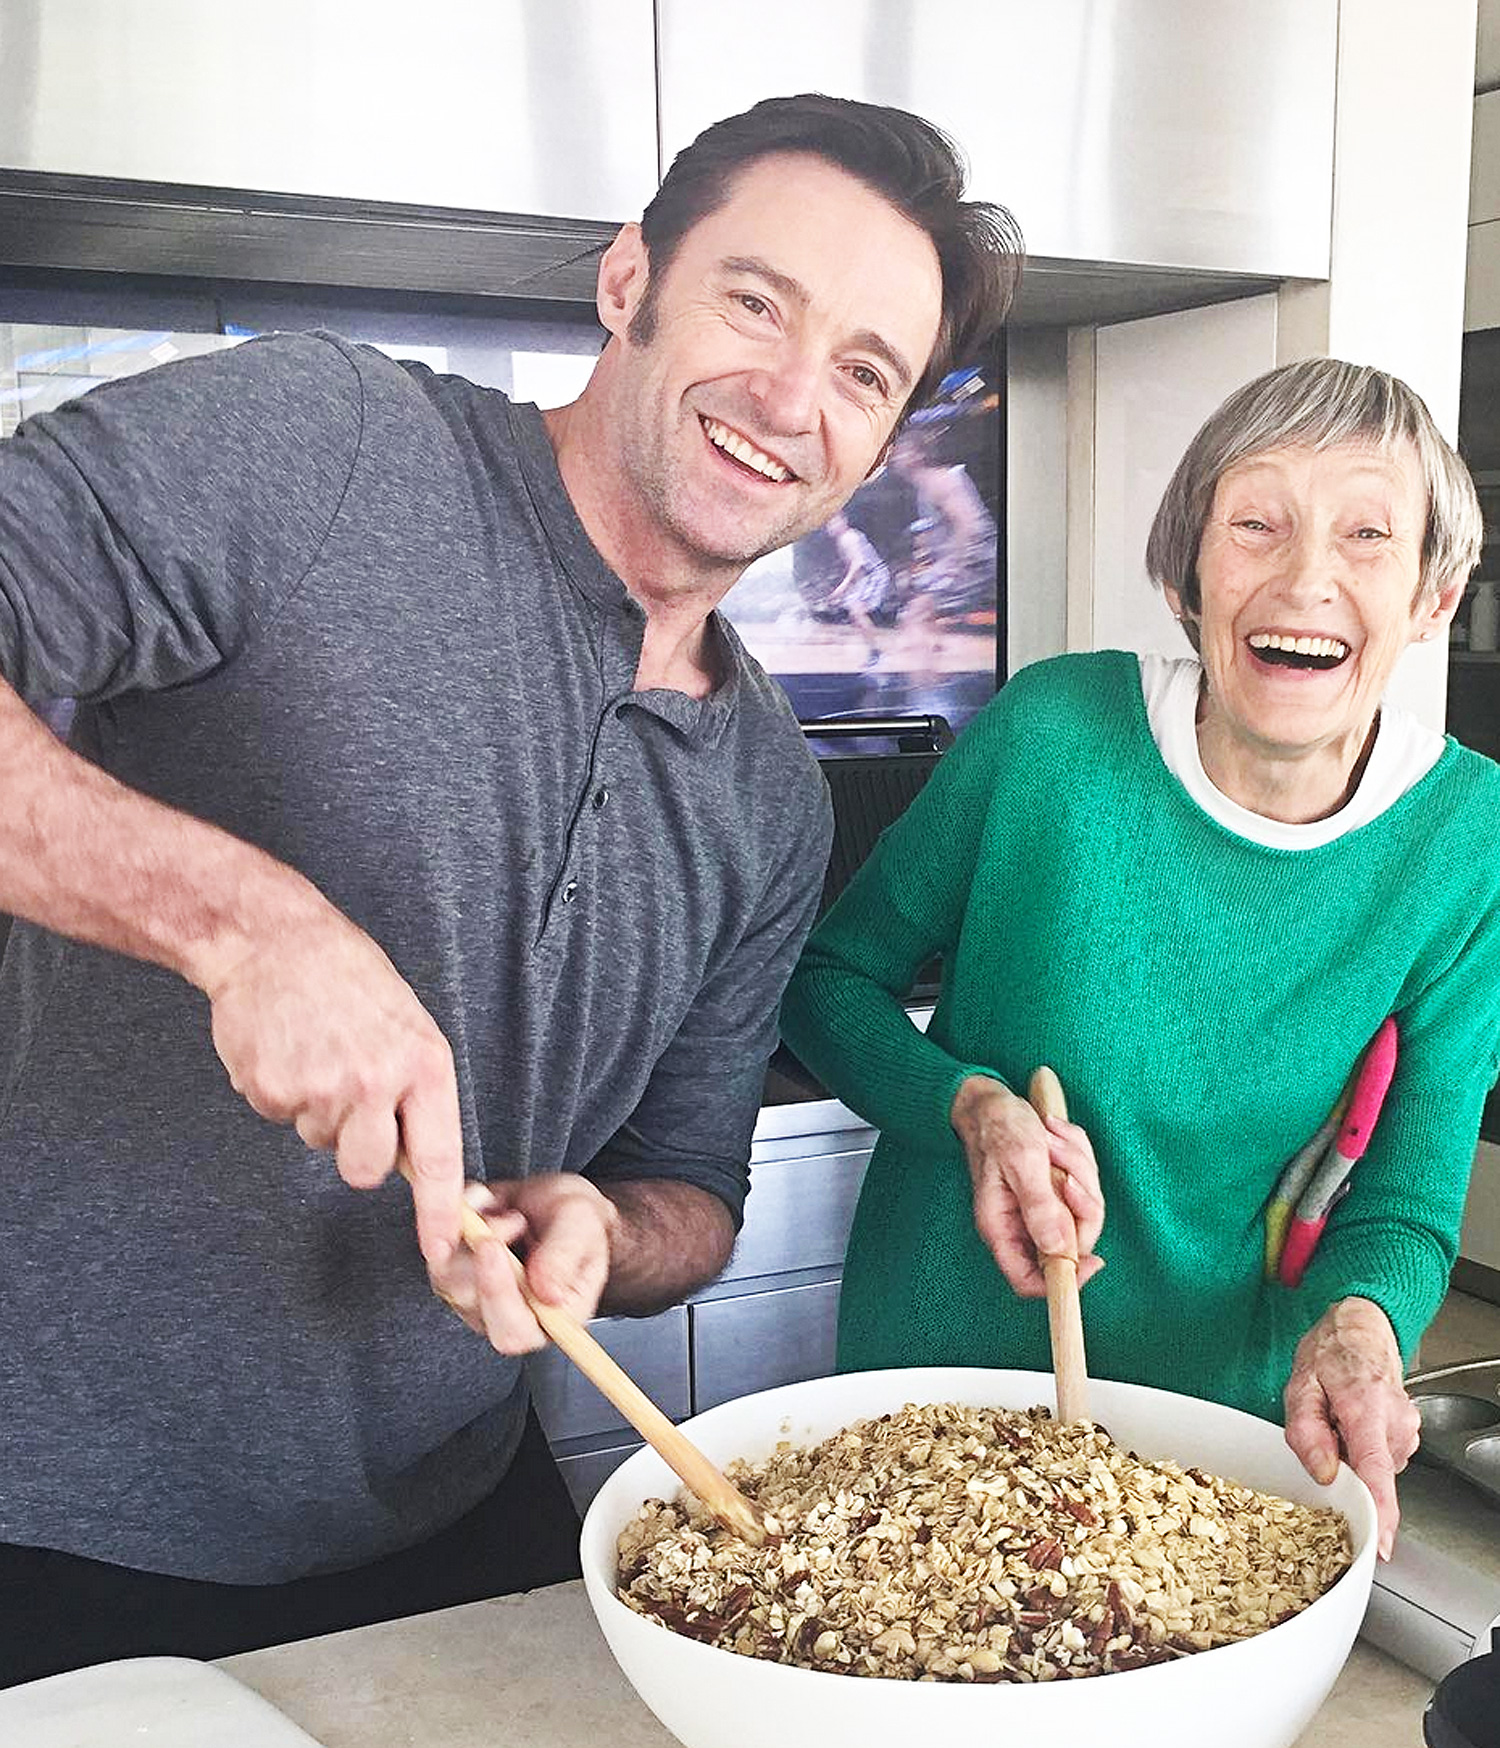 Hugh Jackman Shares His 'Favorite' Recipe from His Mom